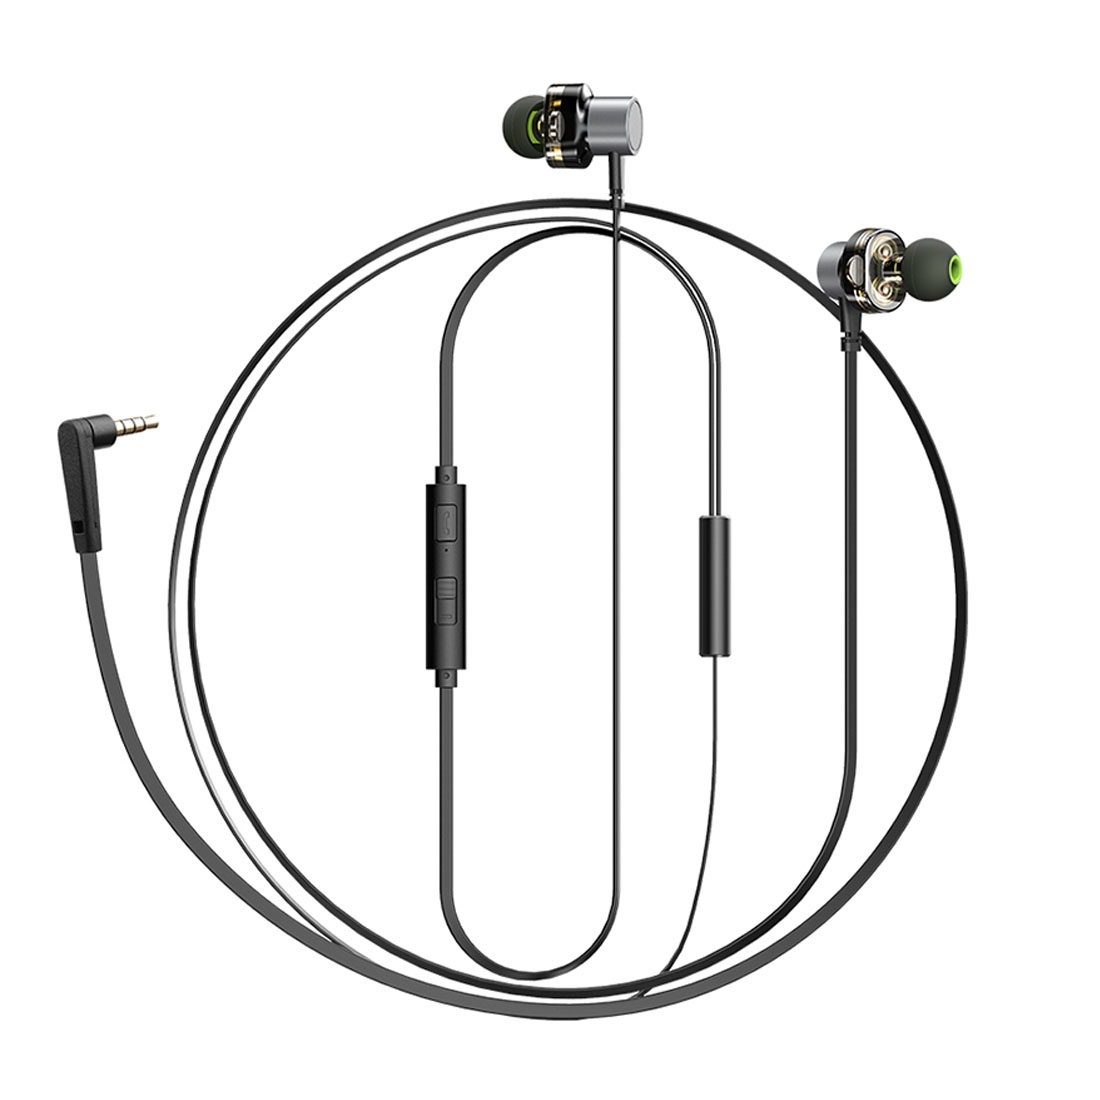 Awei Z1 In Ear Wire Control Earphone With Mic For Iphone